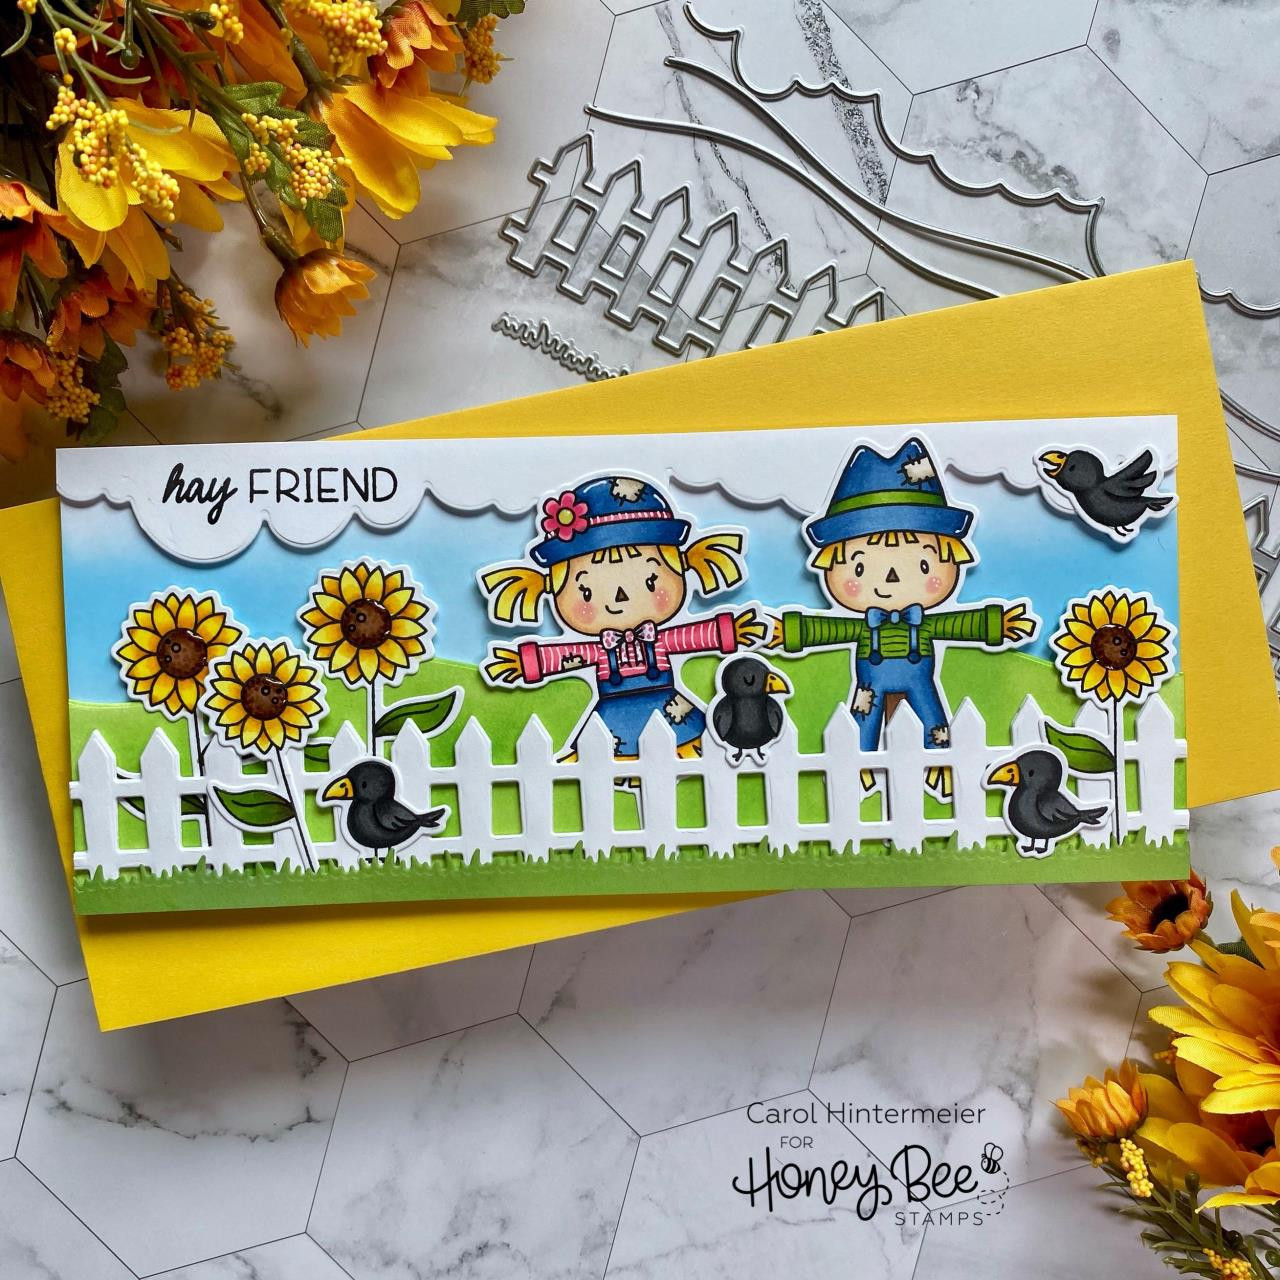 Let's Hang Out, Honey Bee Clear Stamps - 652827602631